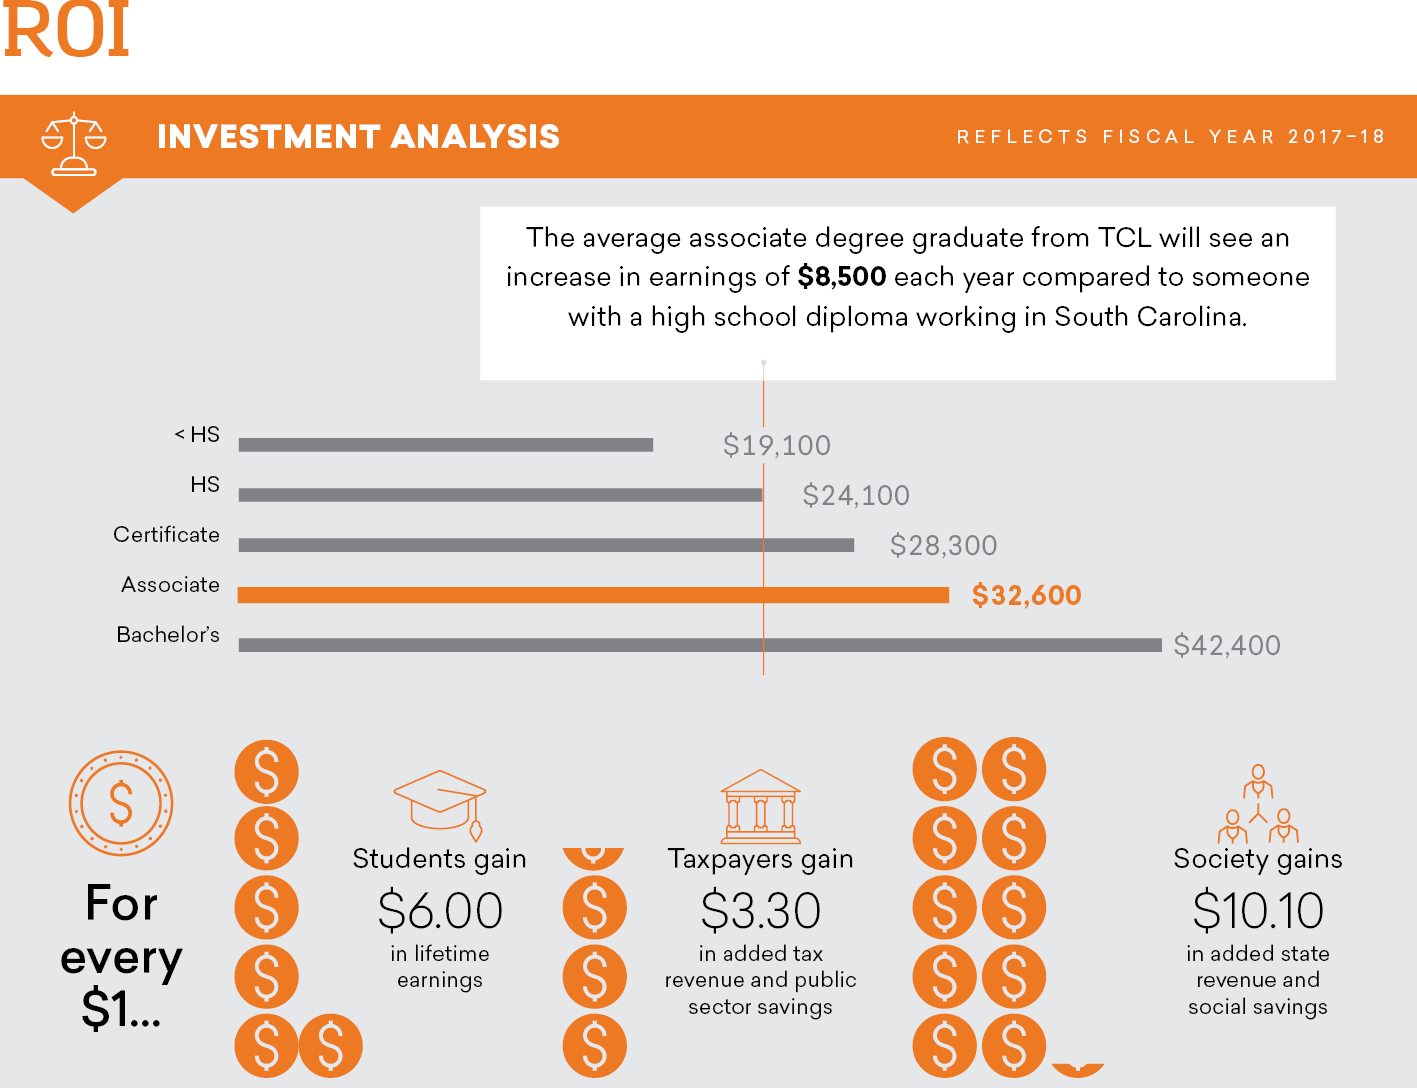 Real R.O.I. Investment analysis (reflects fiscal year 2017-2018): The average associate degree graduate from TCL will see an increase in earnings of $8,500 each year compared to someone with a high school diploma working in South Carolina. No high school diploma earns $19,100 or less. High school diploma earns $24,100. Certificate earns $28,300. Associate degree earns $32,600. Bachelor's degree earns $42,400. For every dollar, Students gain $6 in lifetime earnings, Taxpayers gain $3.30 in added tax revenue and public sector savings, and Society gains $10.10 in added state revenue and social savings.